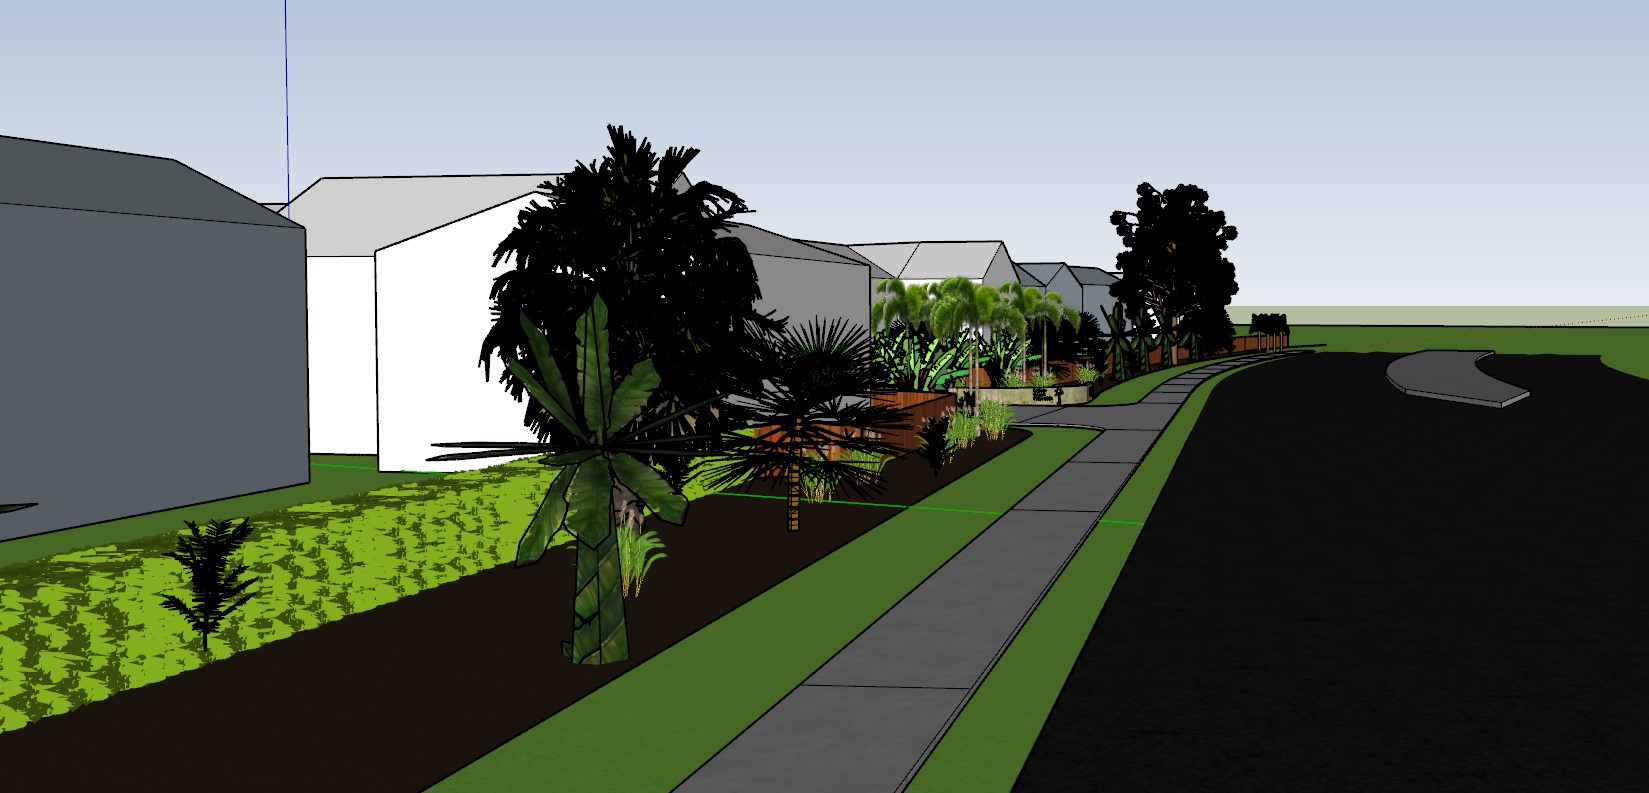 CAD Garden Design. Landscaping Services Melbourne. Using Sketchup to turn landscaping ideas into a plan